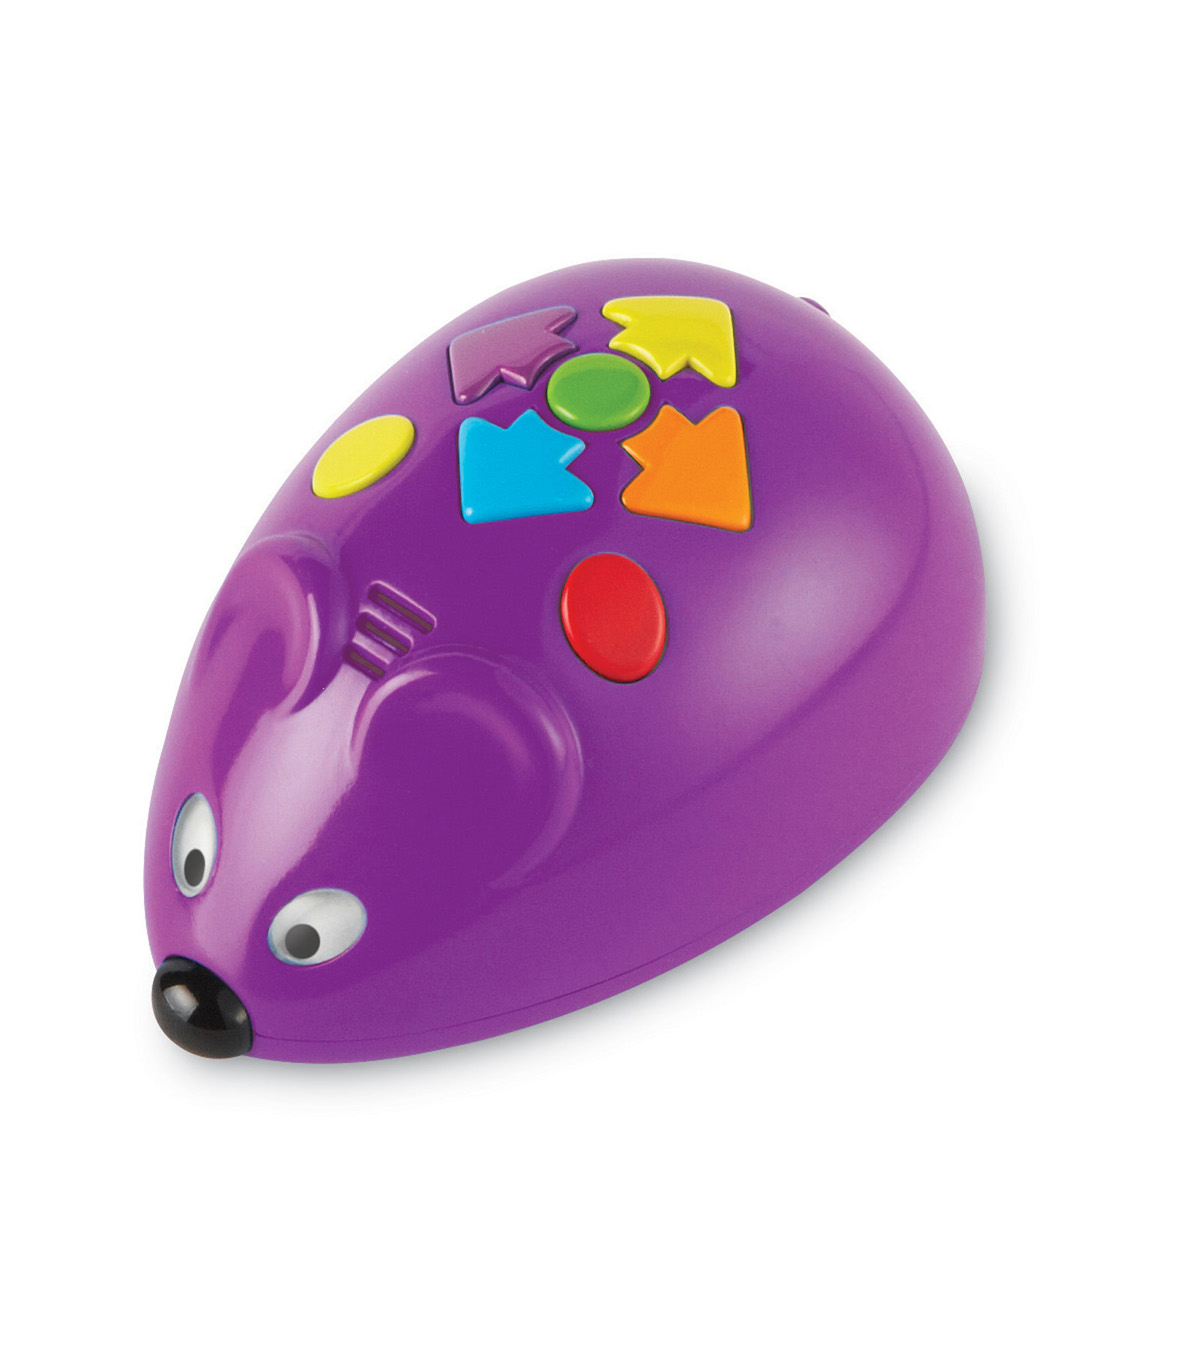 Code & Go Programmable Robot Mouse